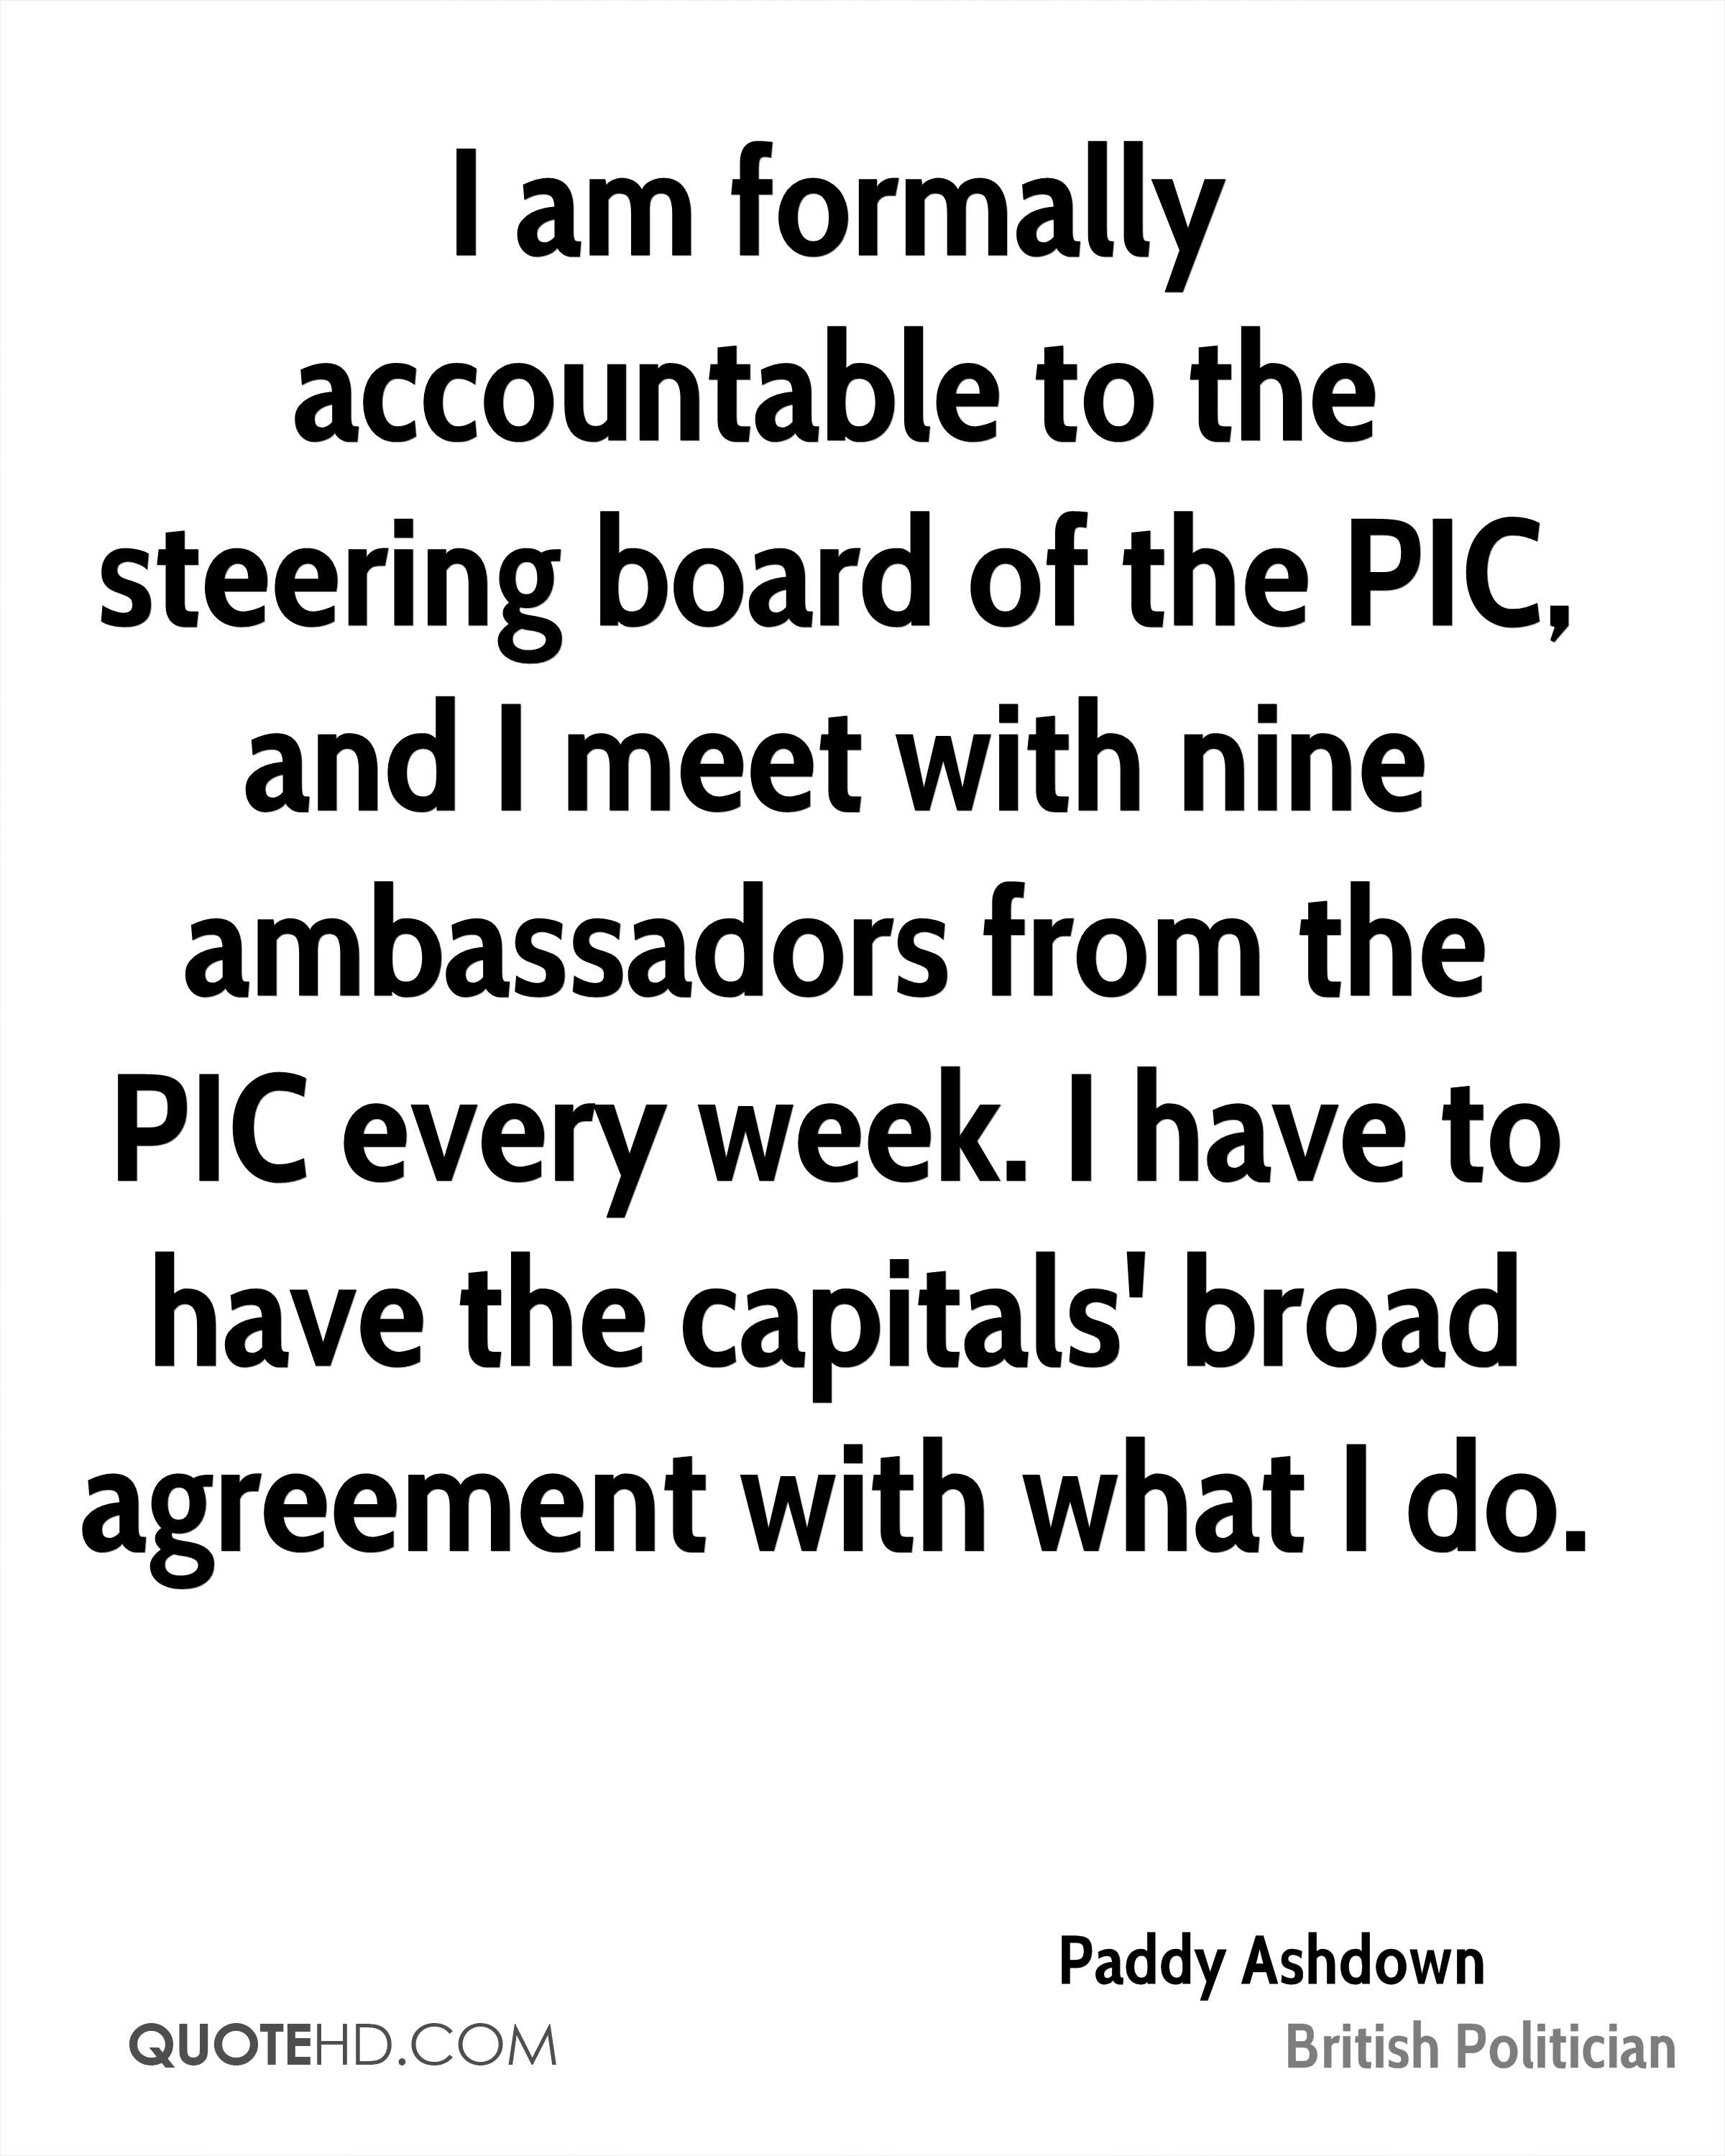 I am formally accountable to the steering board of the PIC, and I meet with nine ambassadors from the PIC every week. I have to have the capitals' broad agreement with what I do.